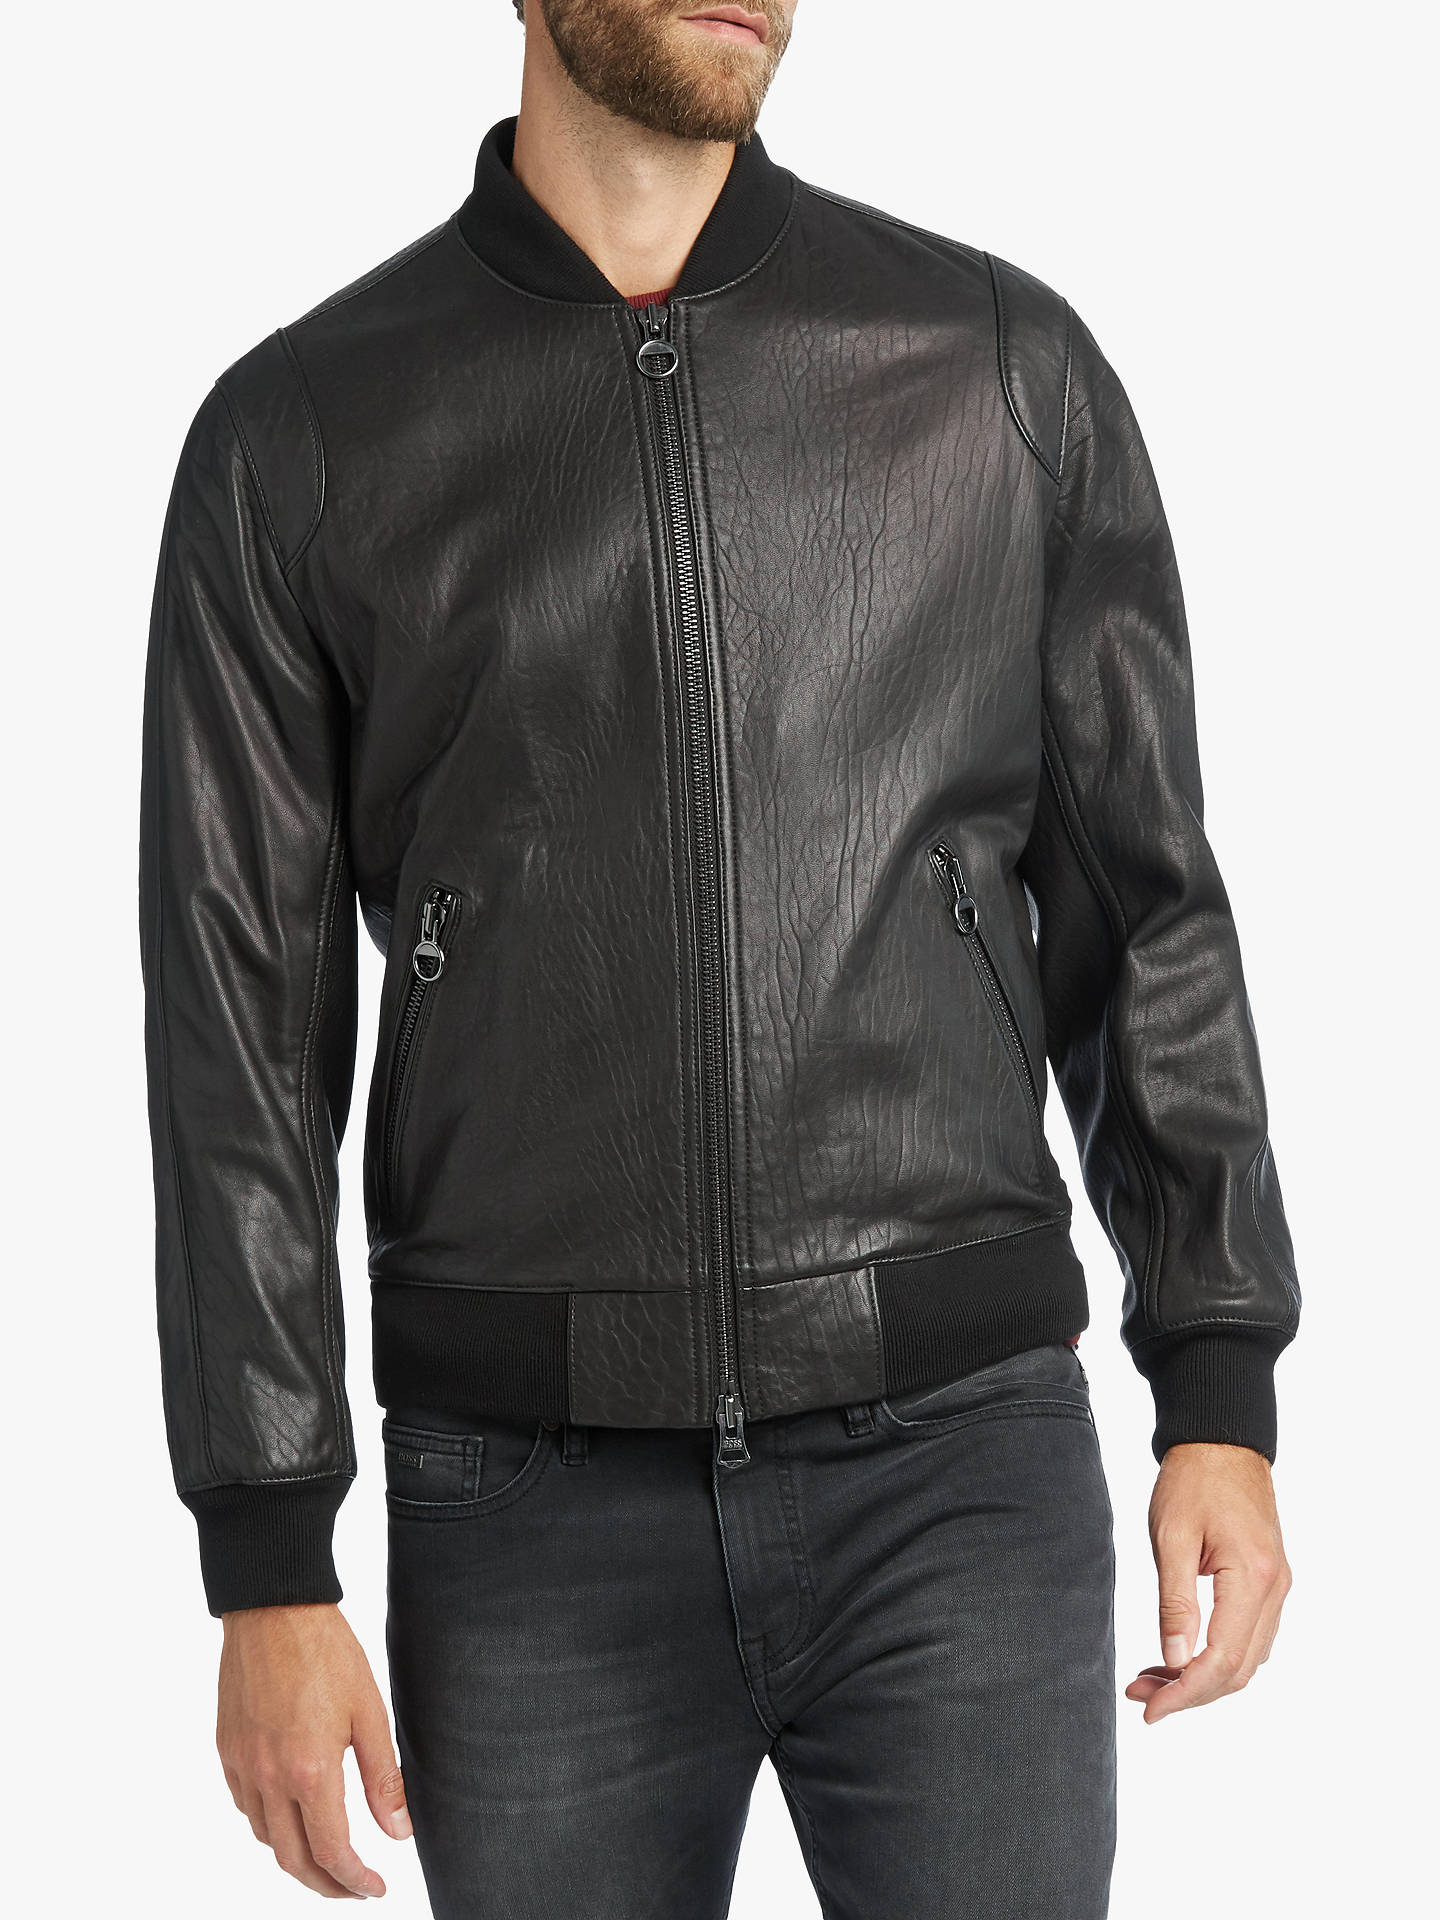 BuyBOSS Josiah Leather Jacket, Black, 38R Online at Traveller Location